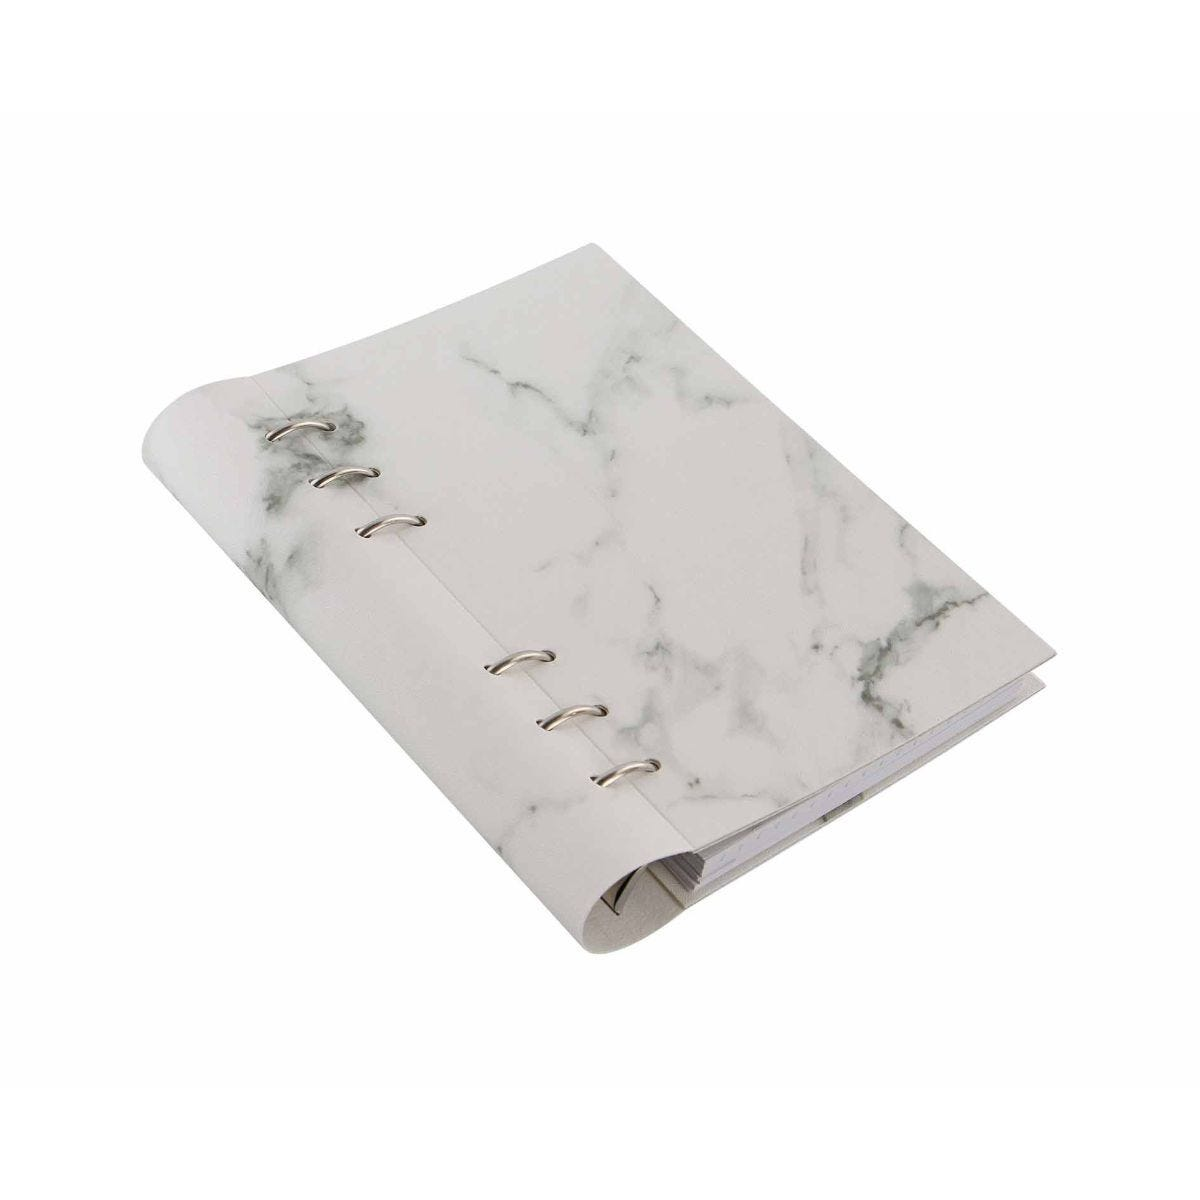 Filofax Refillable Clipbook Planner Personal Marble